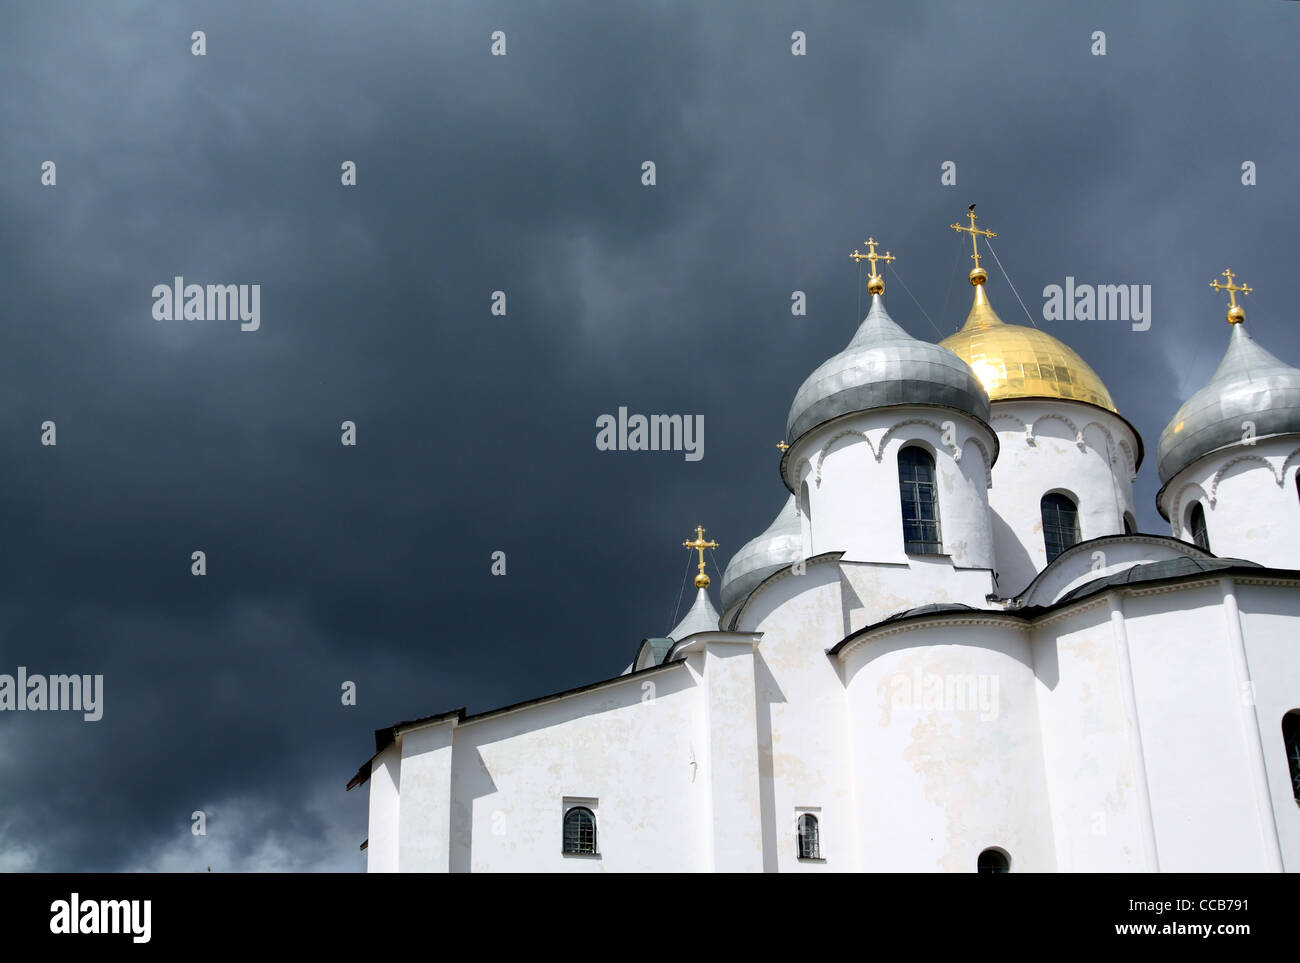 christian orthodox church on cloudy background - Stock Image